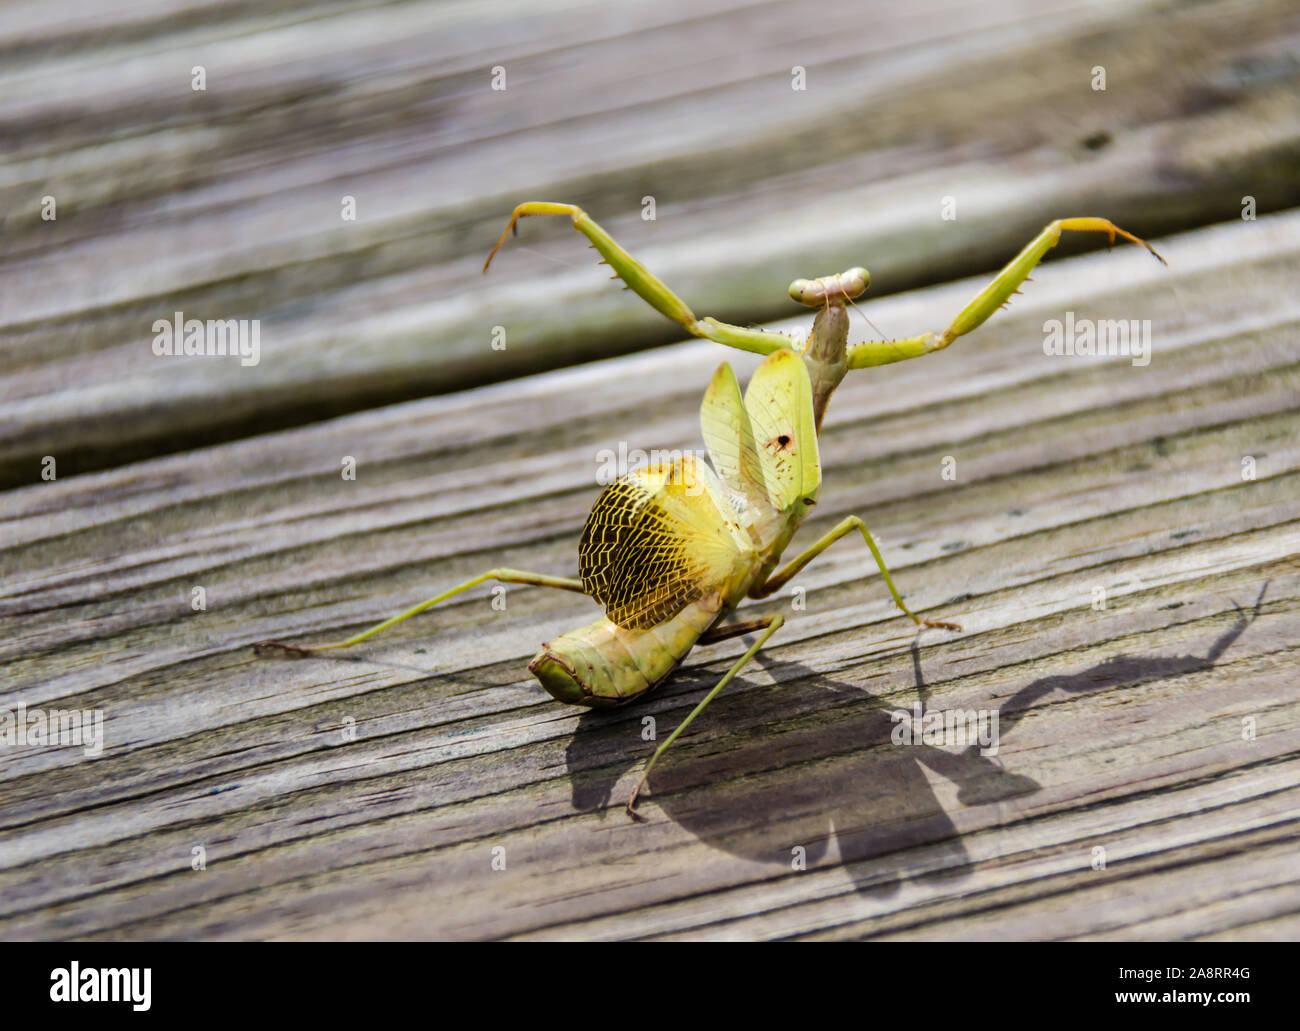 Praying Mantis Wings High Resolution Stock Photography And Images